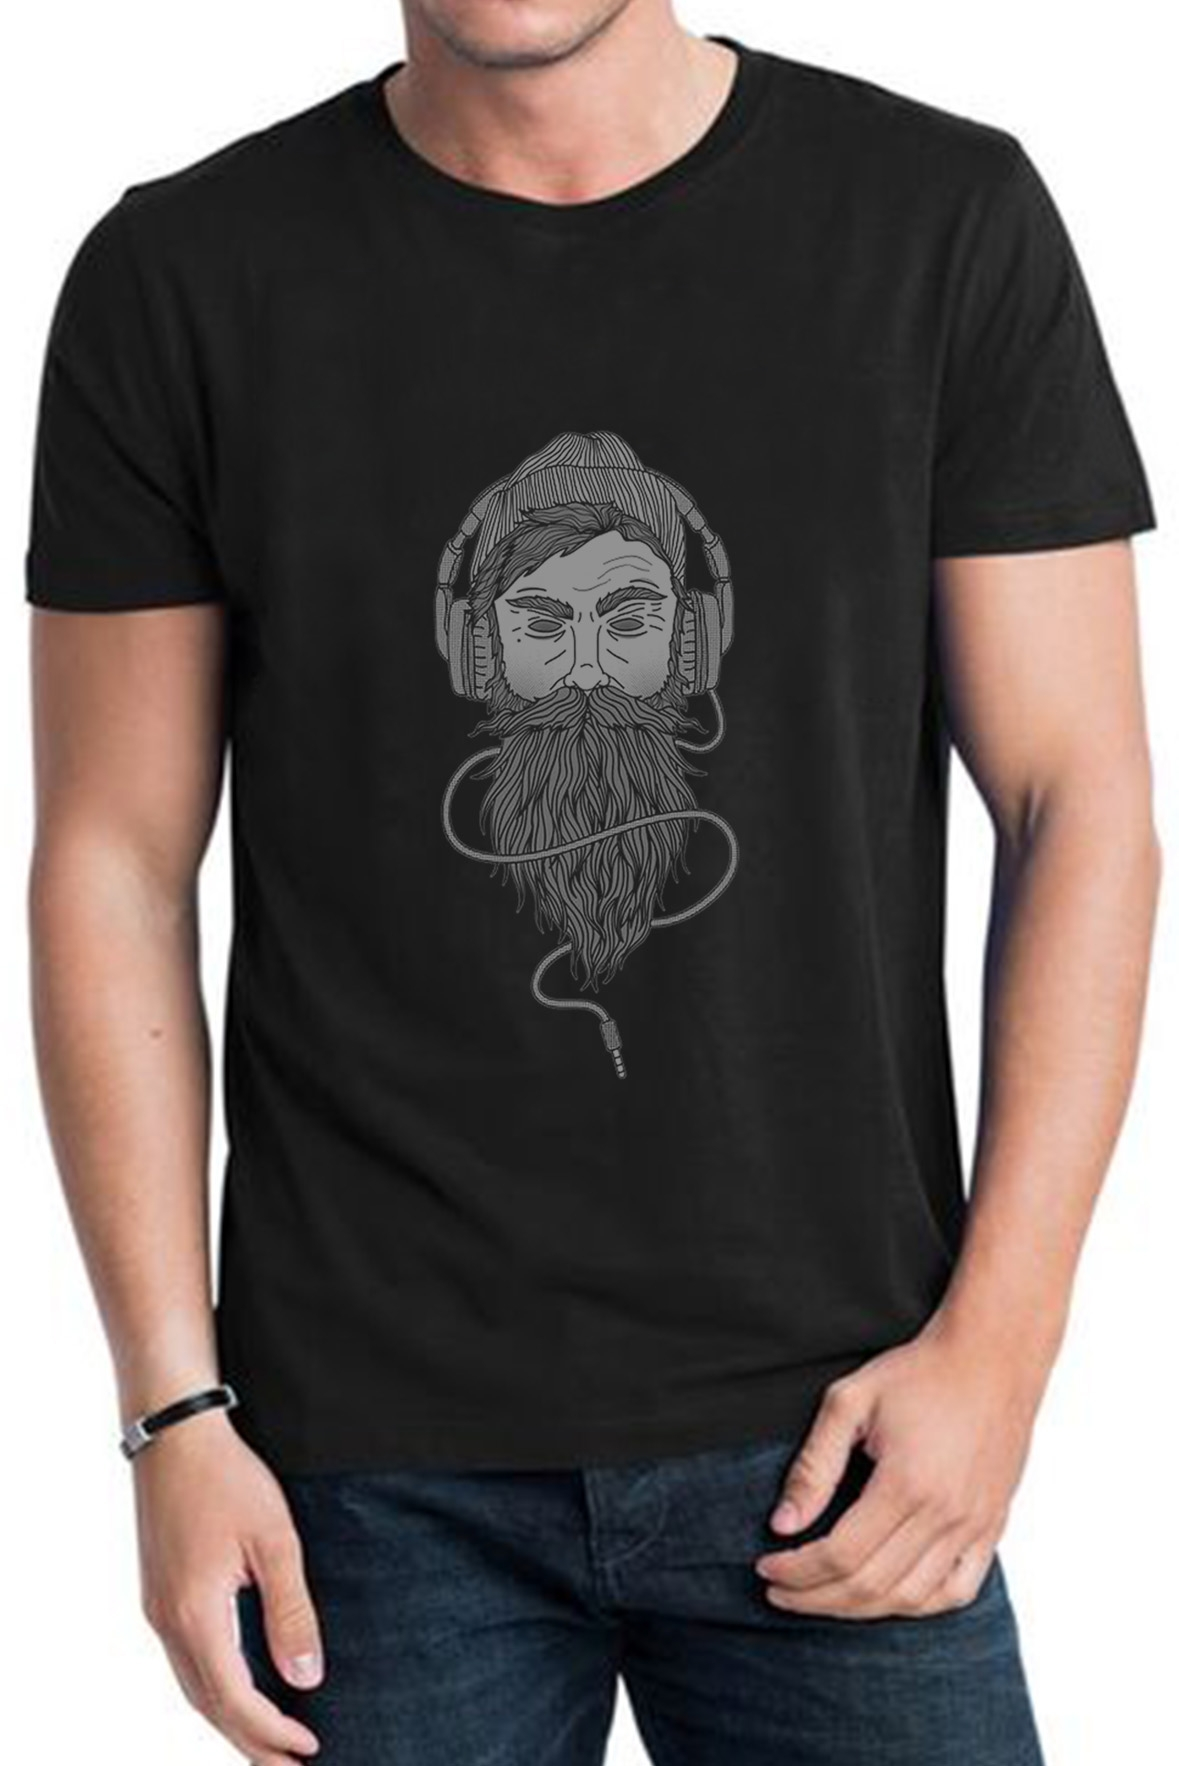 Headphone Jack Guy Half Sleeve Black Tee